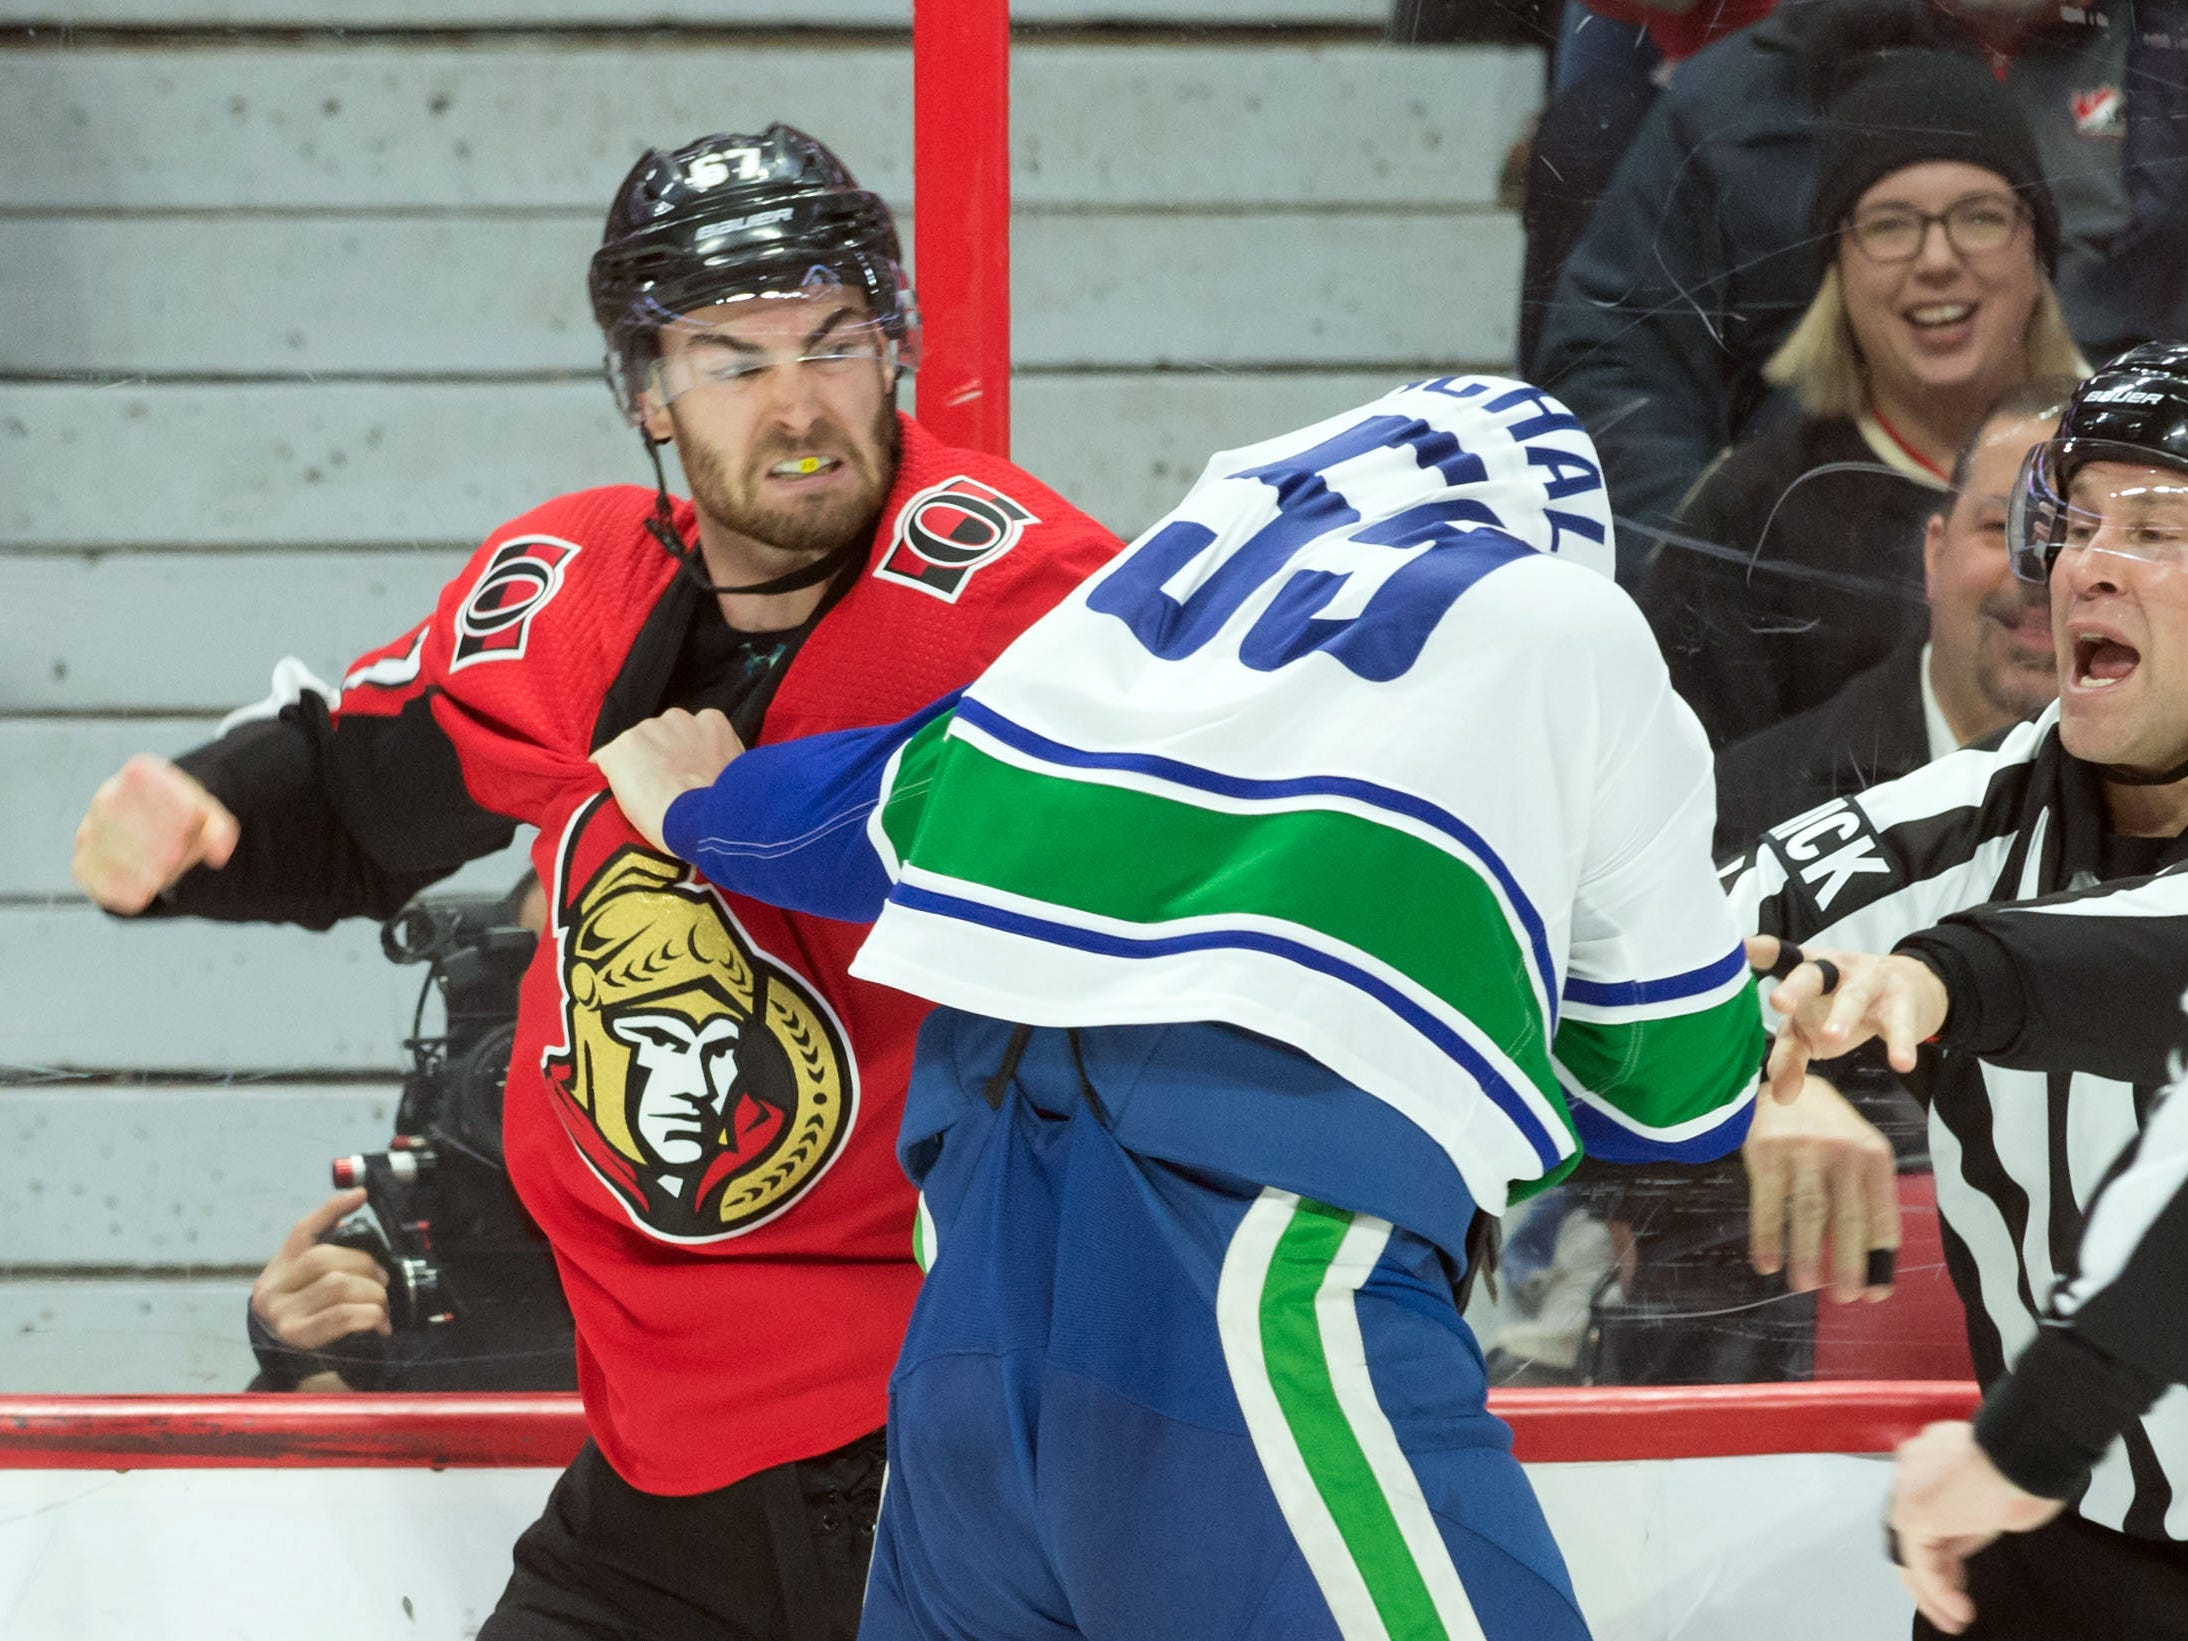 Jan. 2. Ottawa Senators' Ben Harpur vs. Vancouver Canucks' Tim Schaller